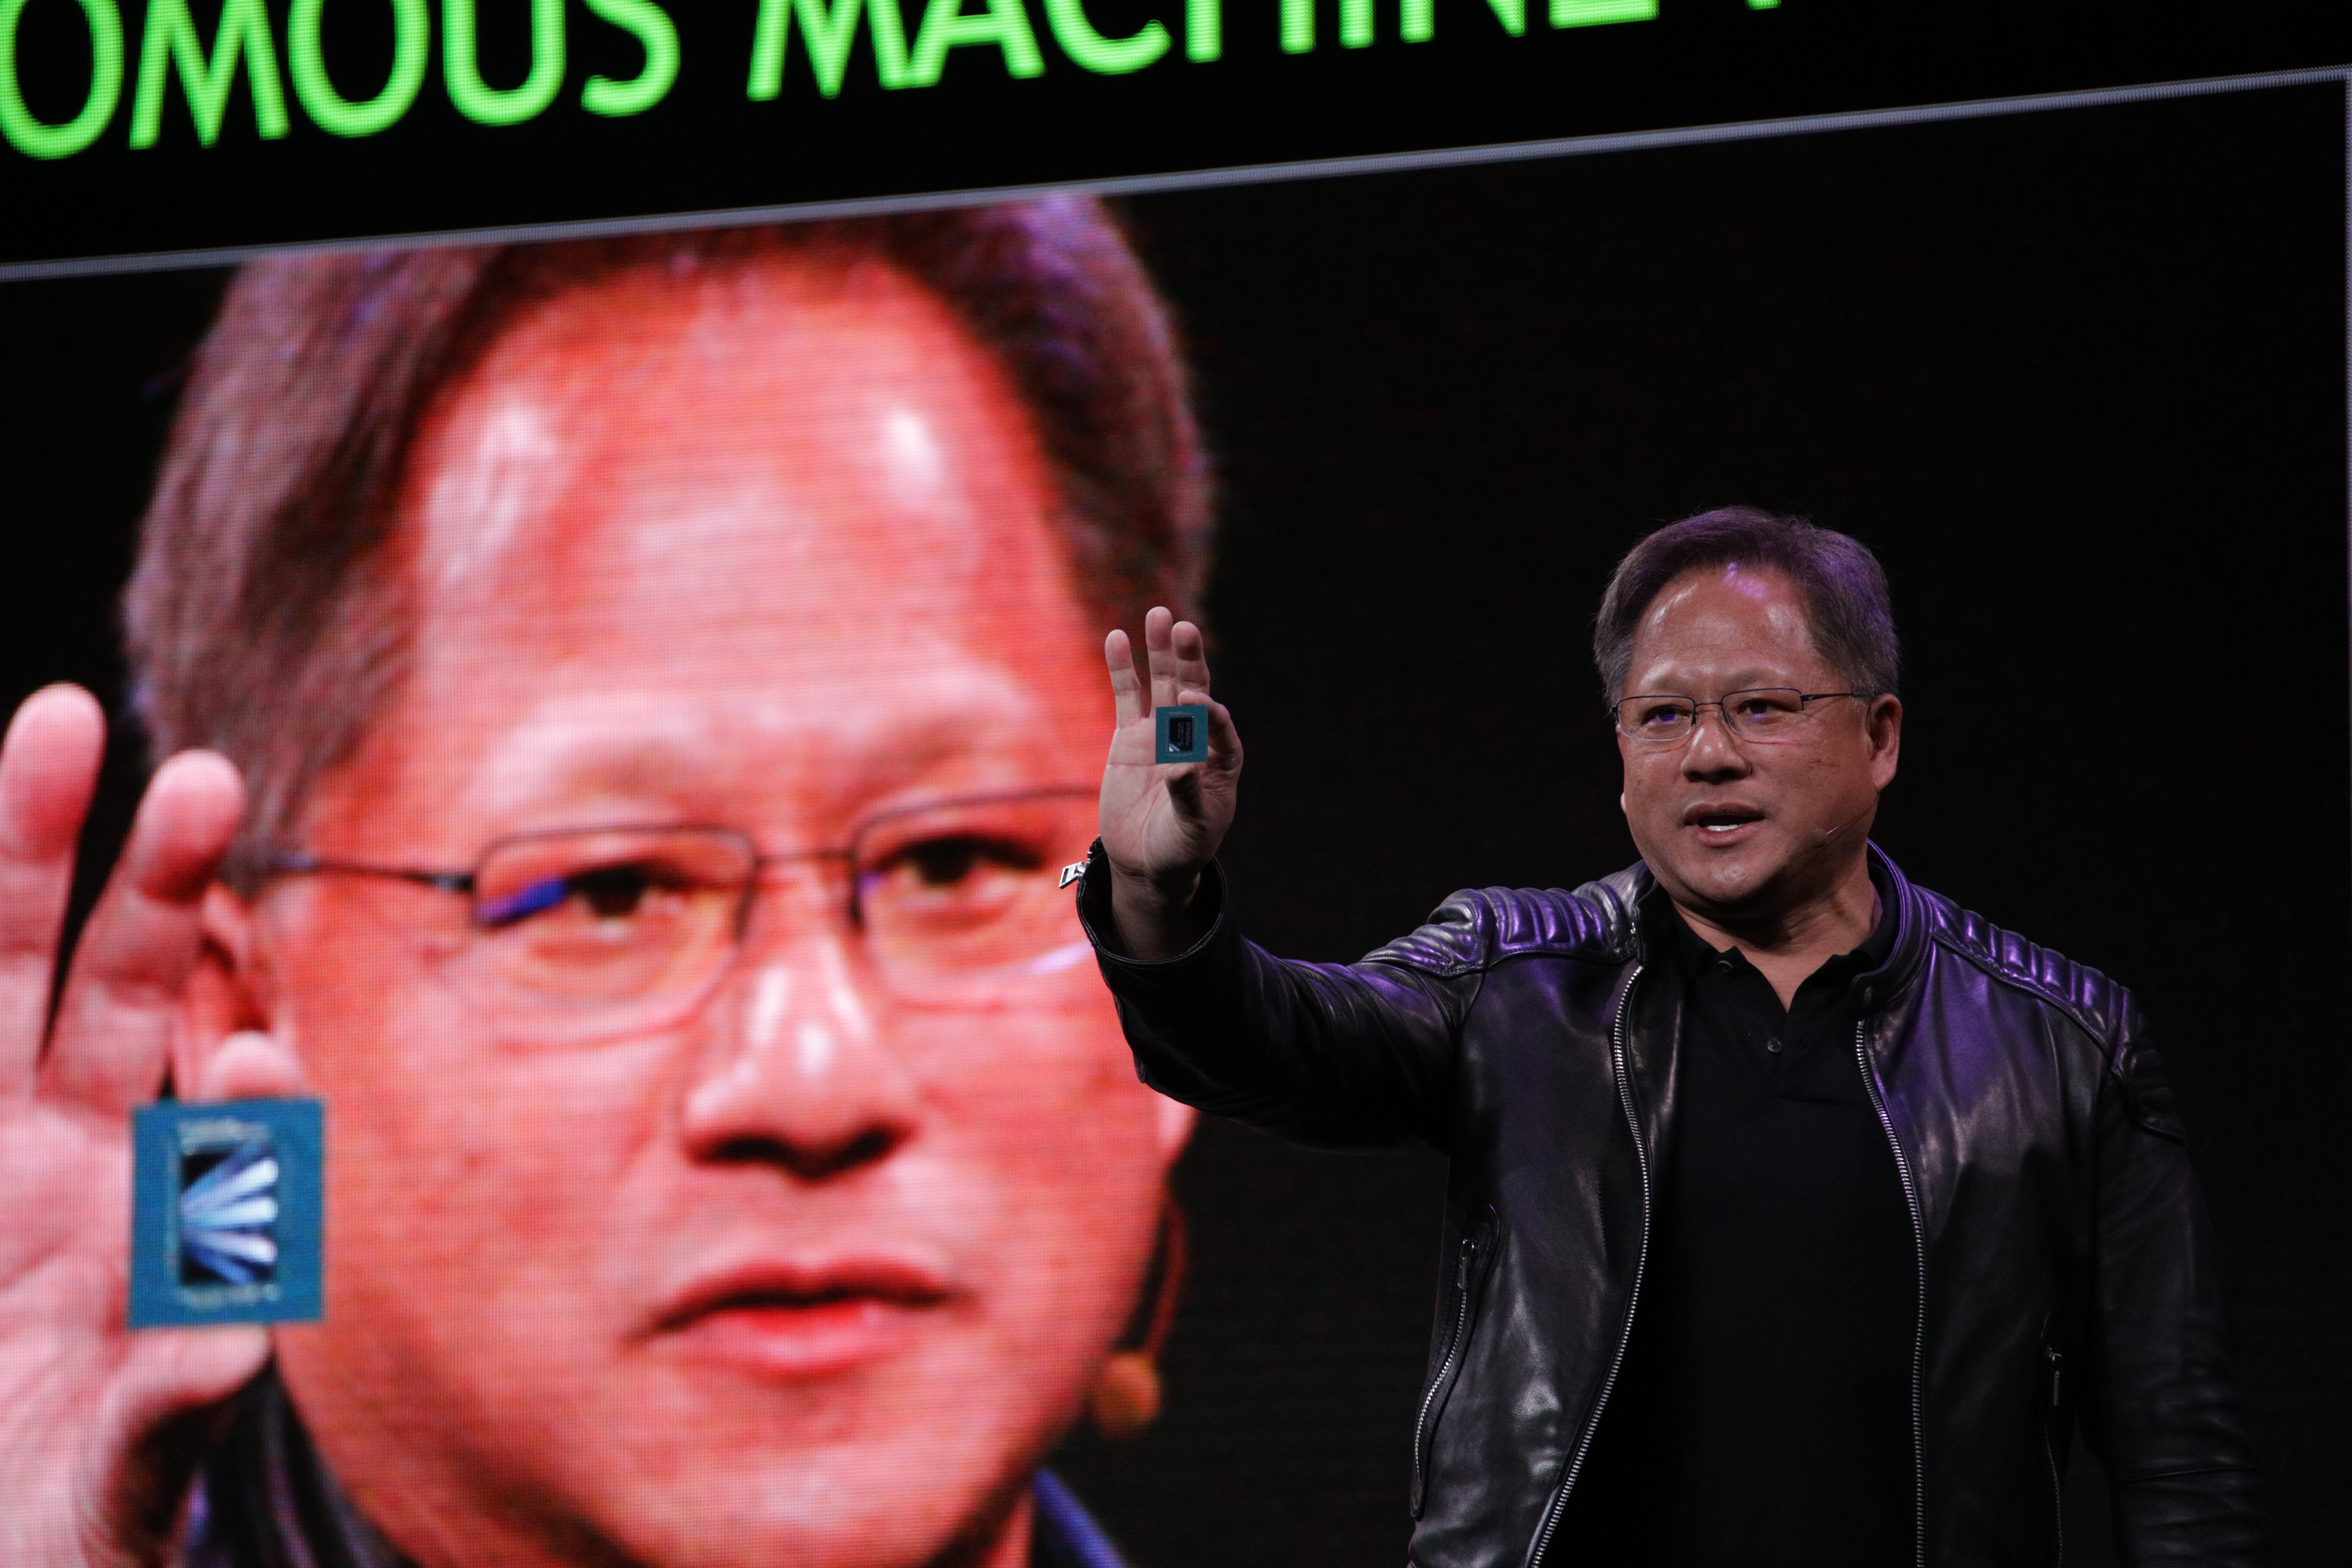 Nvidia CEO: Uber crash will spur more self-driving vehicle  investment